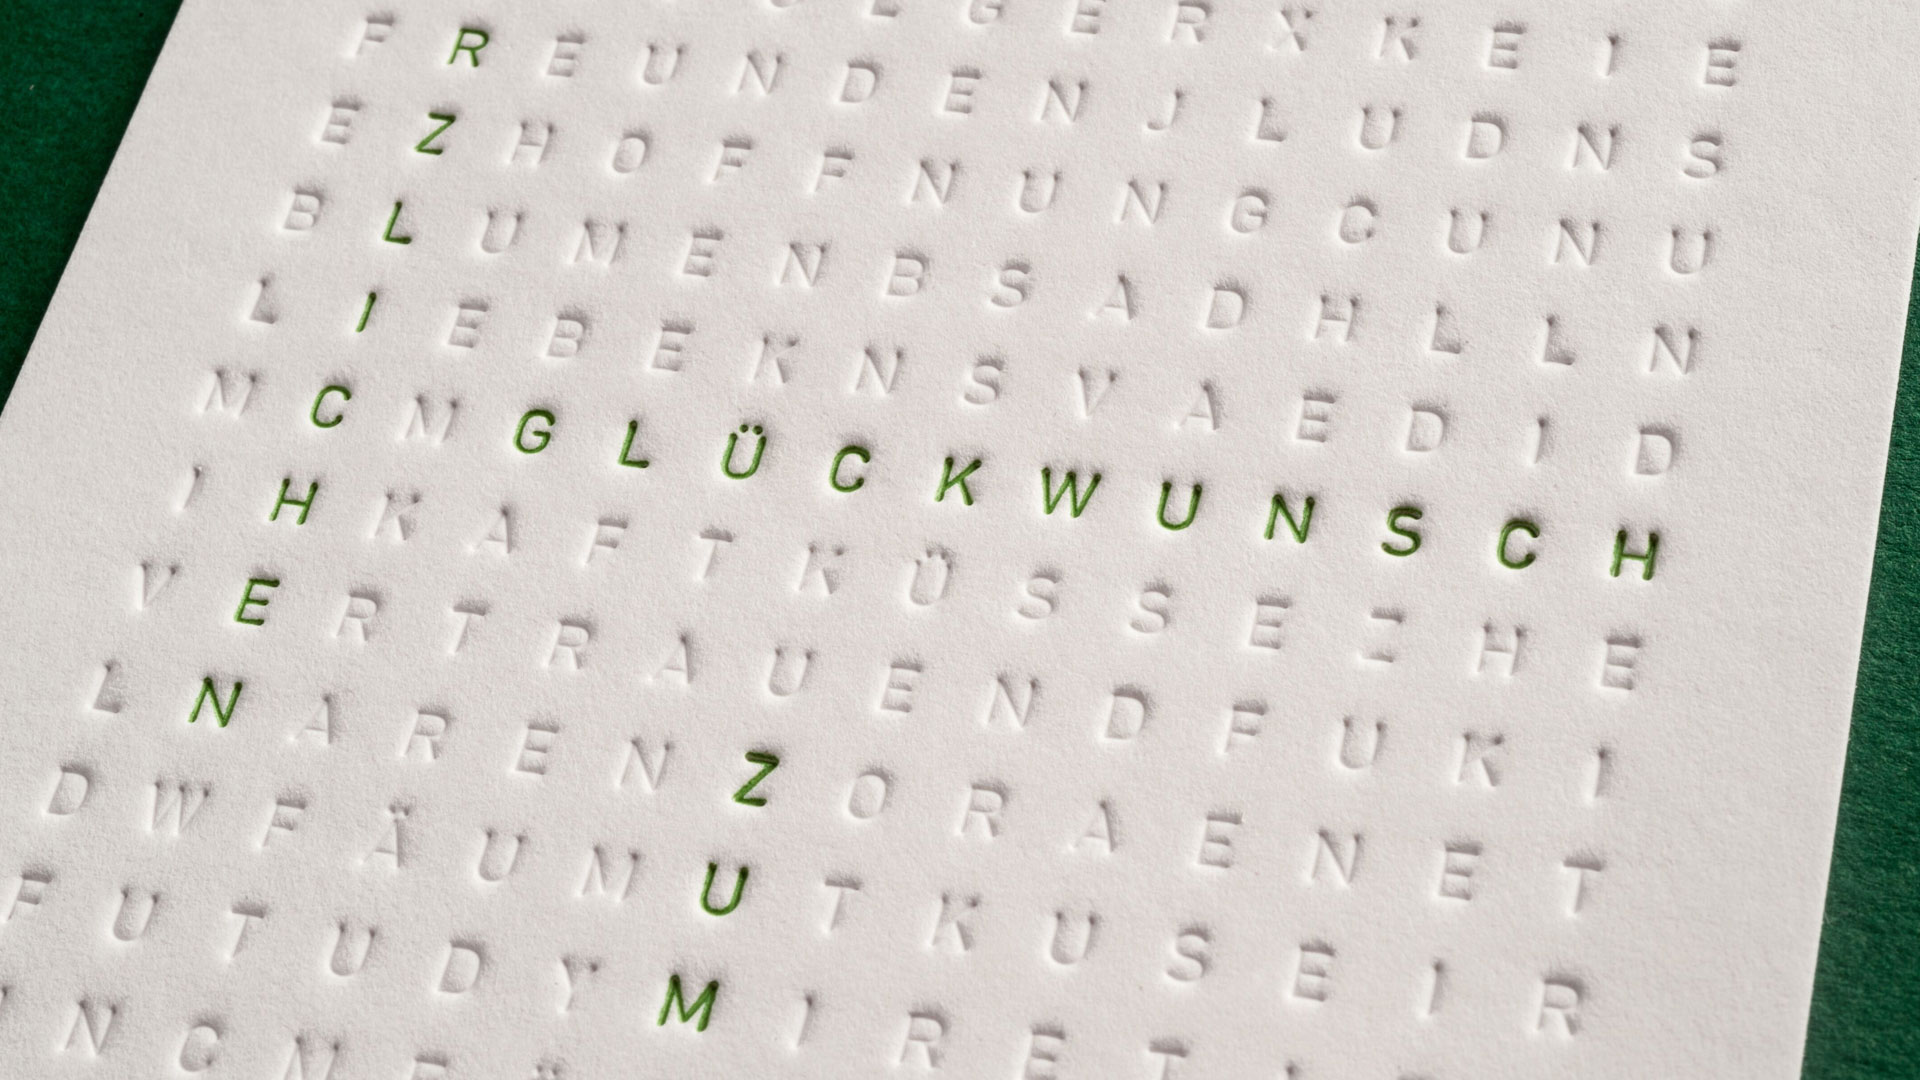 Interactive Scrabble Birthday Card - PaperSpecs